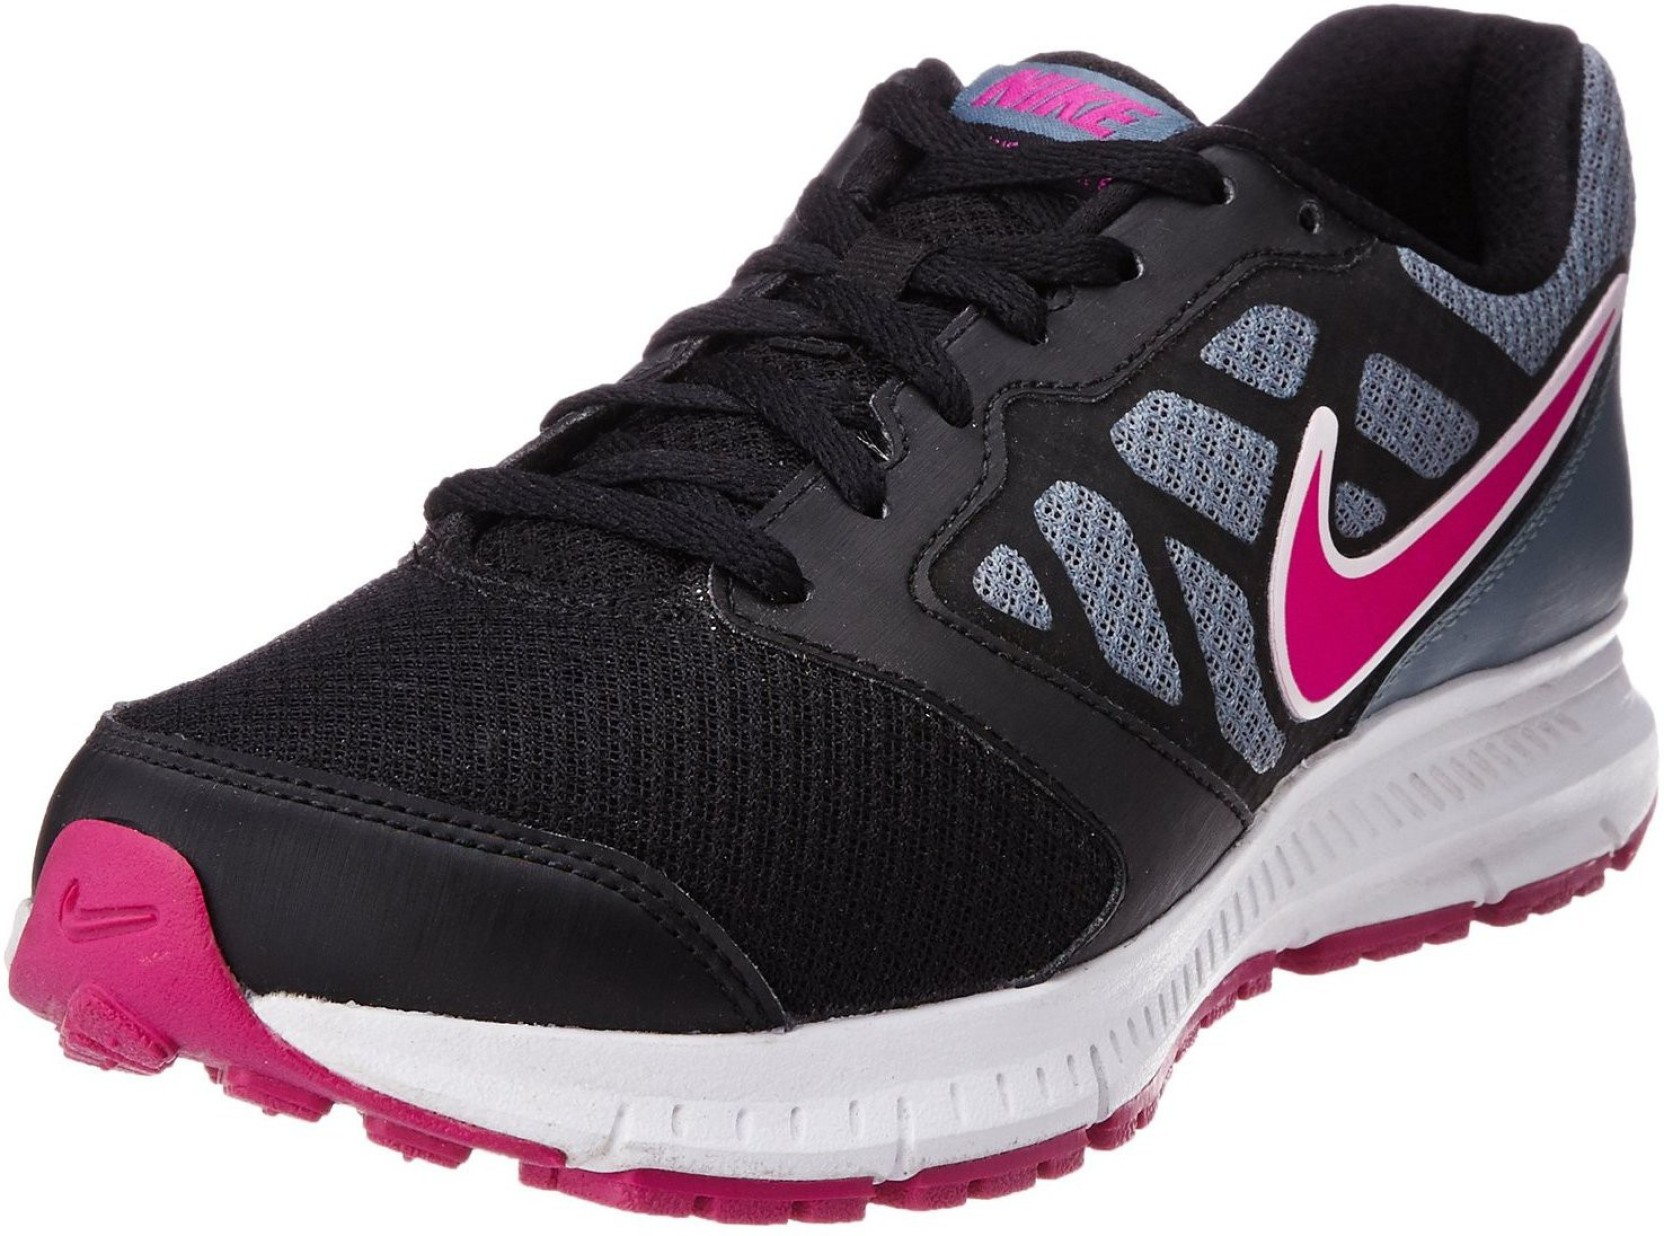 uk availability 55d8f 65a98 Nike DOWNSHIFTER 6 MSL Running Shoes For Women (Blue, Grey, Pink)